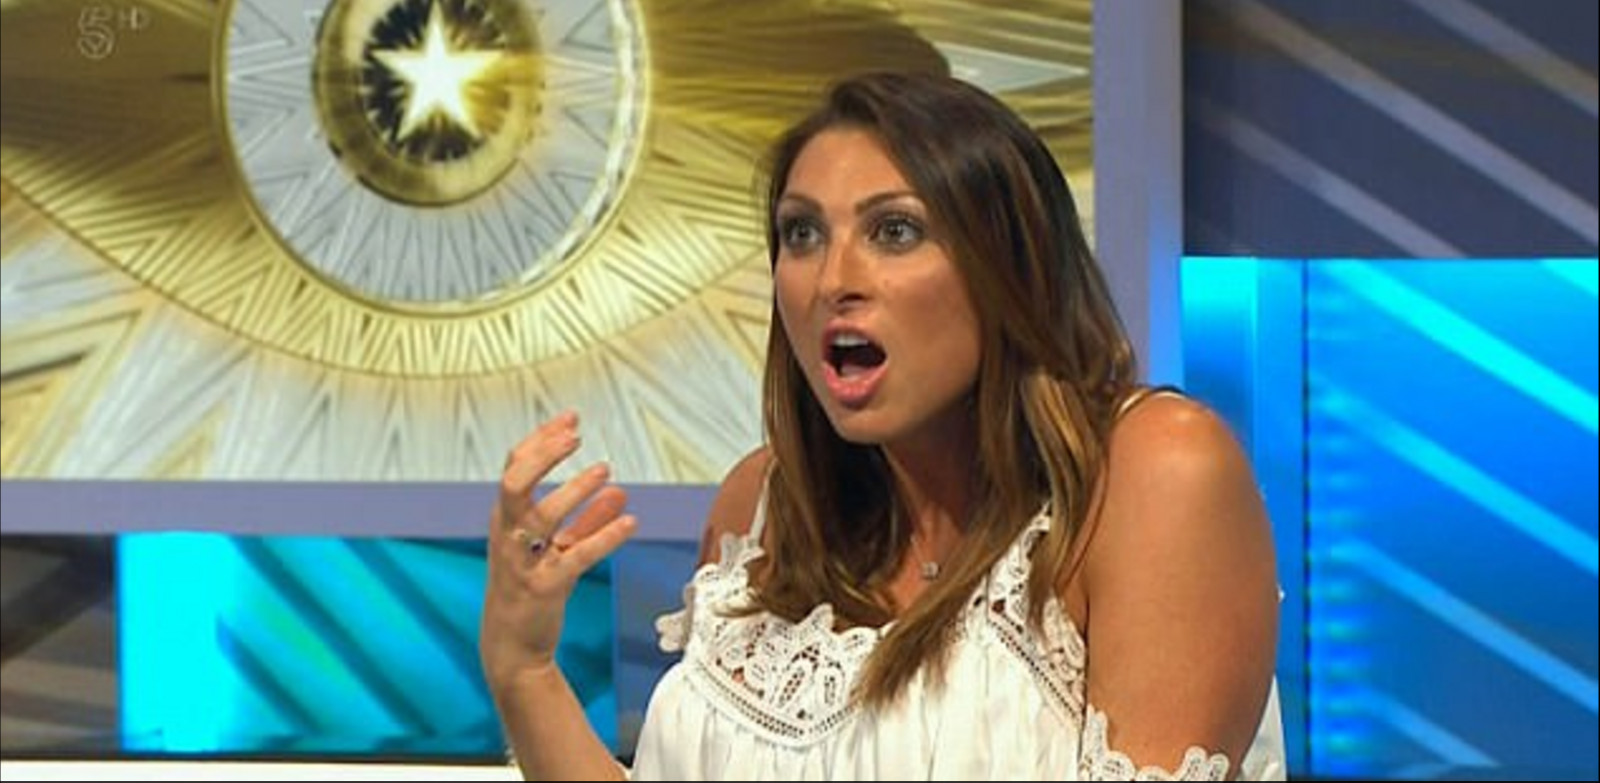 CBB viewers call for police action after Luisa Zissman says Jemma Lucy should be 'washed in acid'